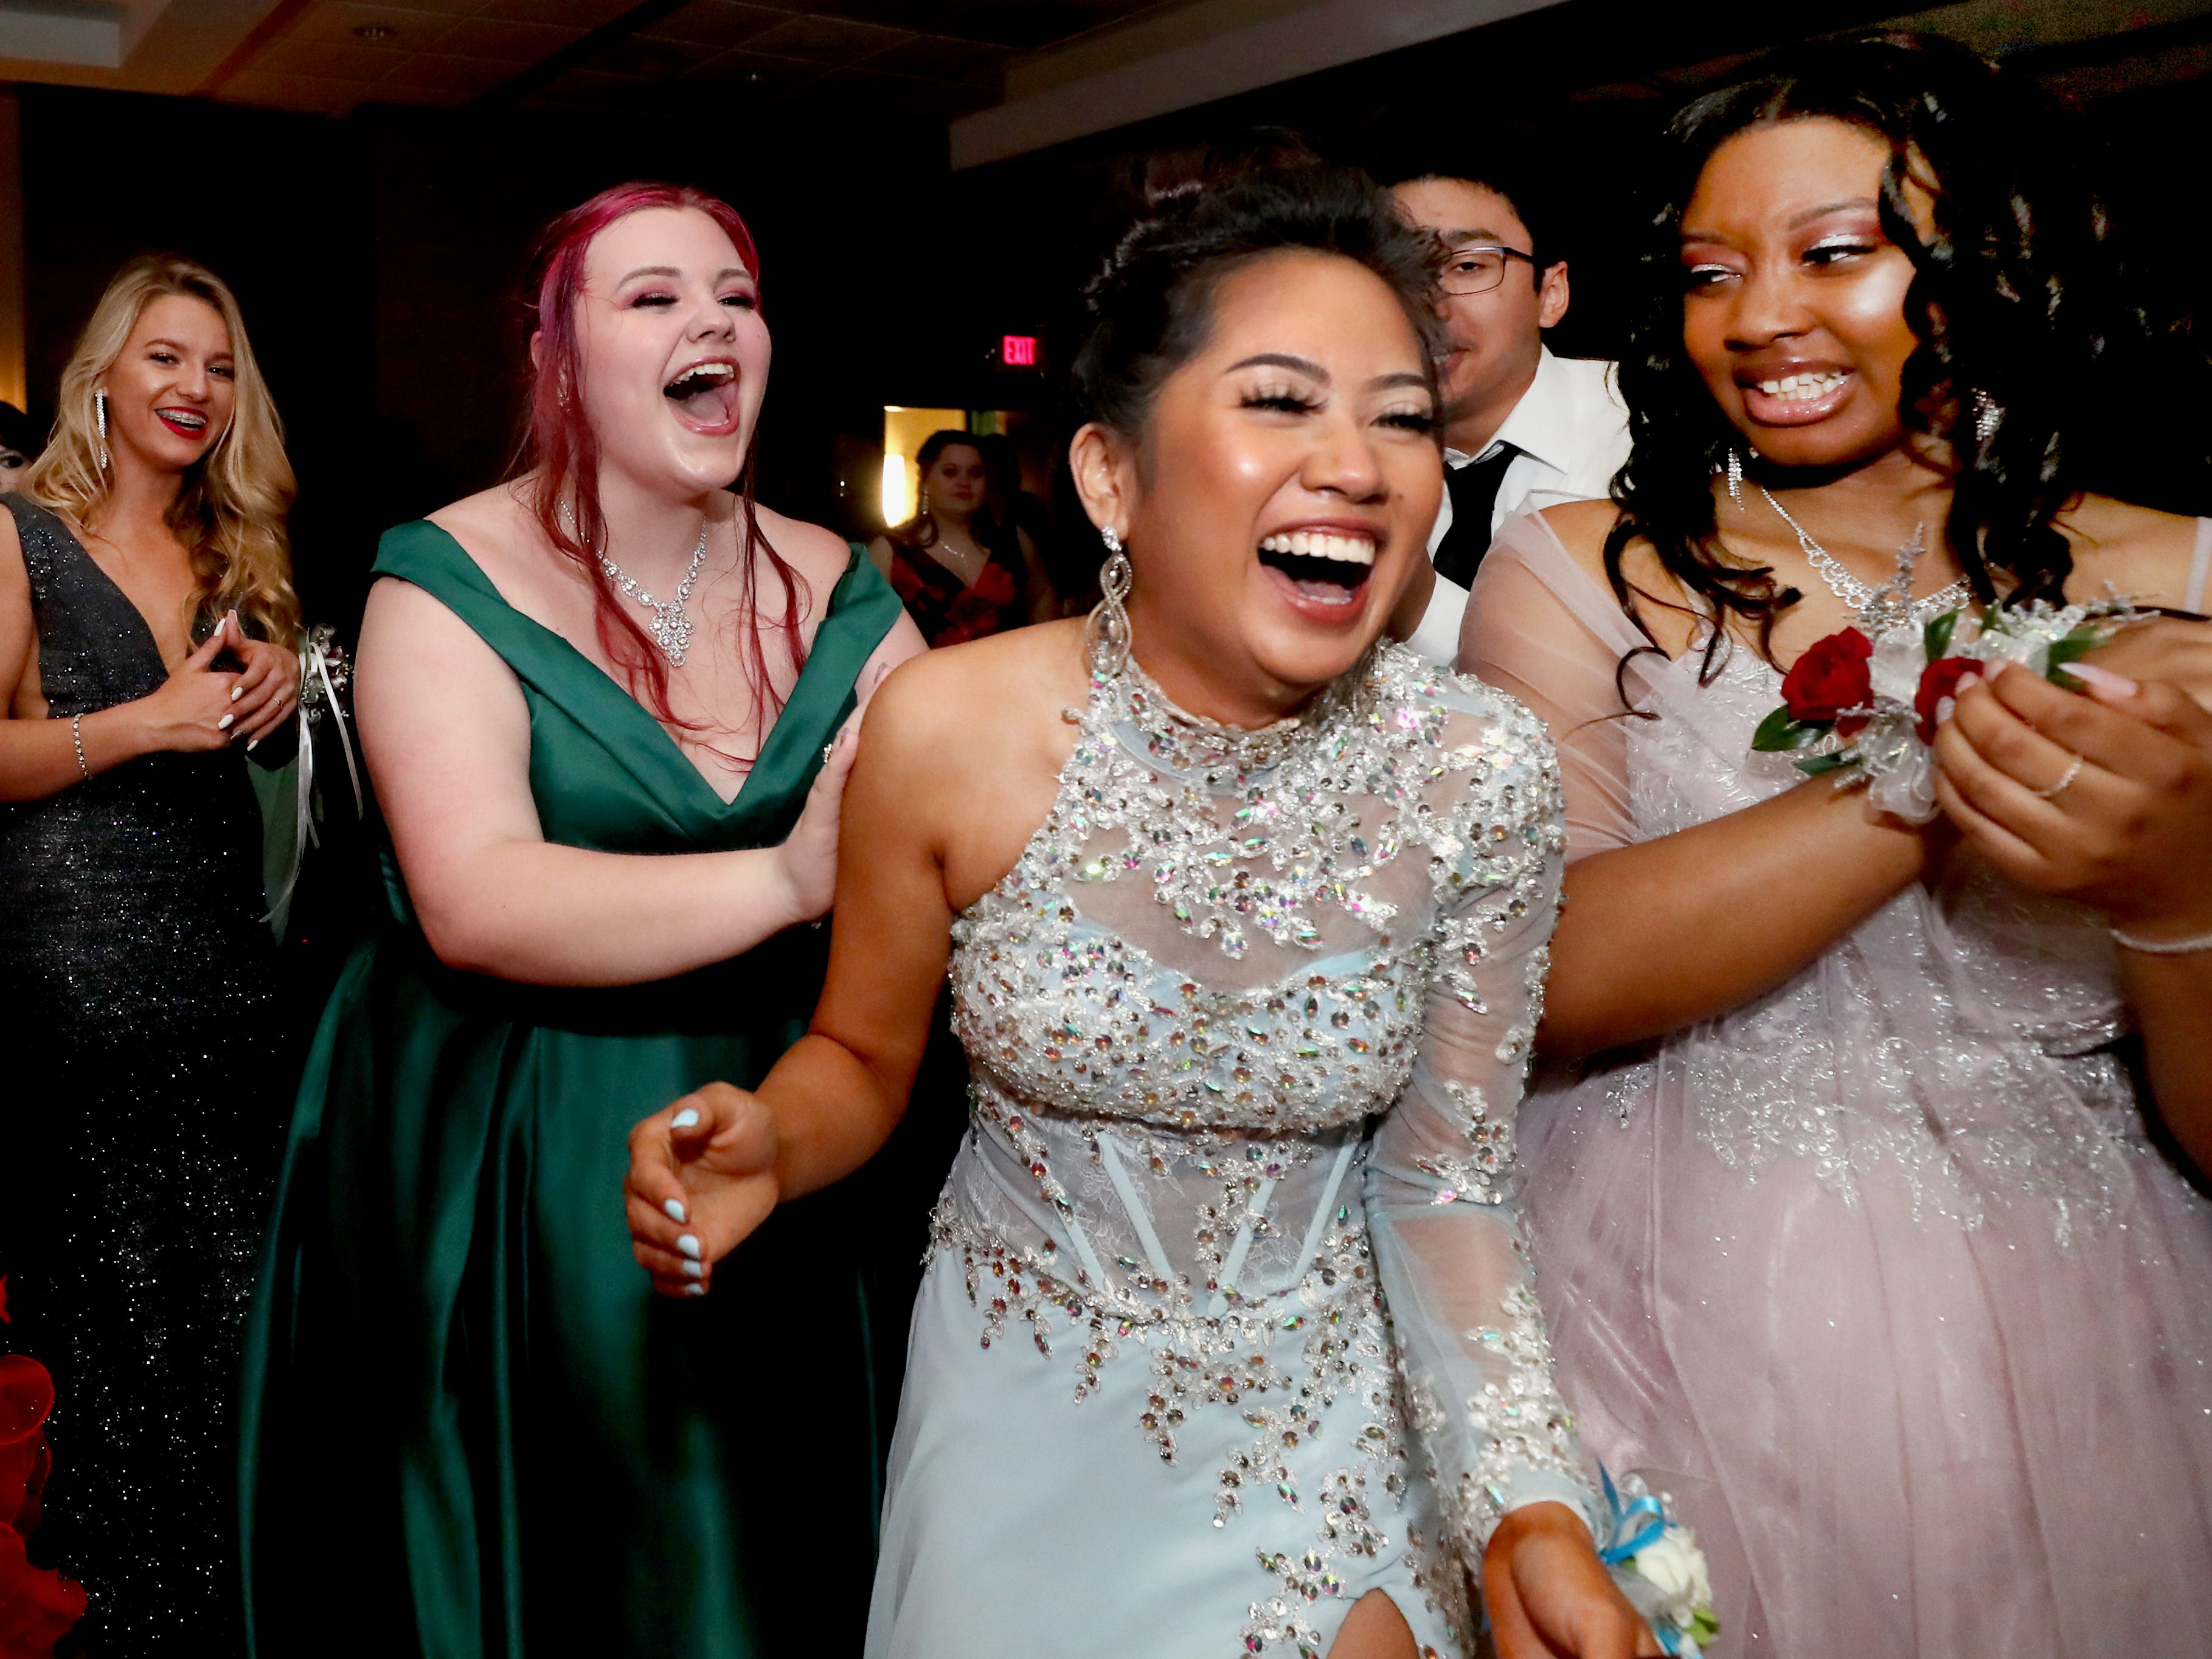 Anna Kounboribounsak reacts as she is named Holloway High's Prom Queen at Holloway's prom at the DoubleTree on Thursday April 18, 2019.